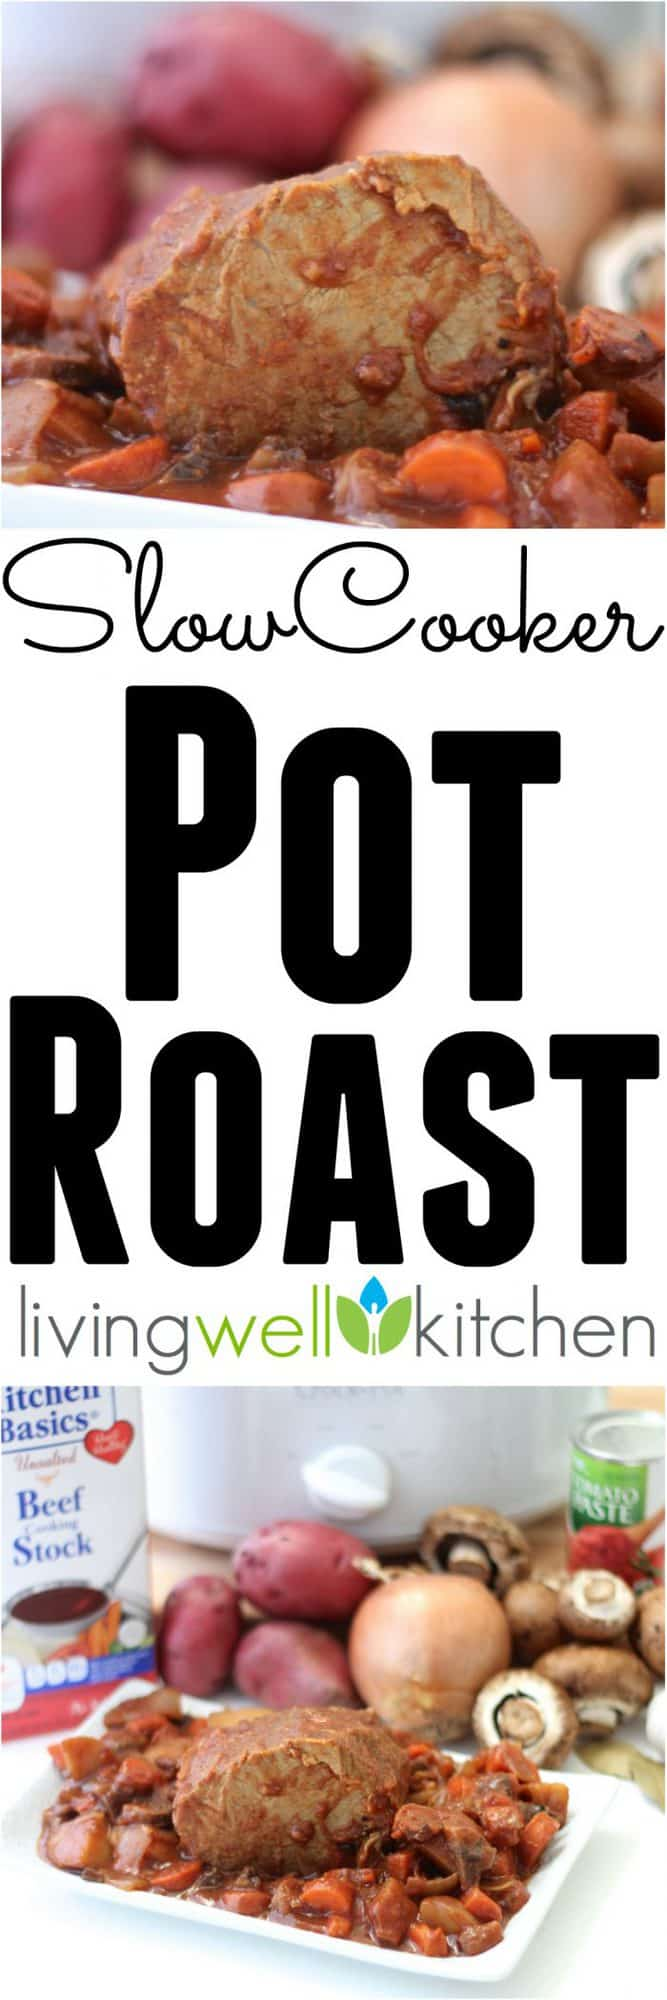 Slow Cooker Pot Roast recipe from @memeinge is a combo of tender meat, tons of veggies, flavorful sauce... easy to make, nourishing comfort food goodness